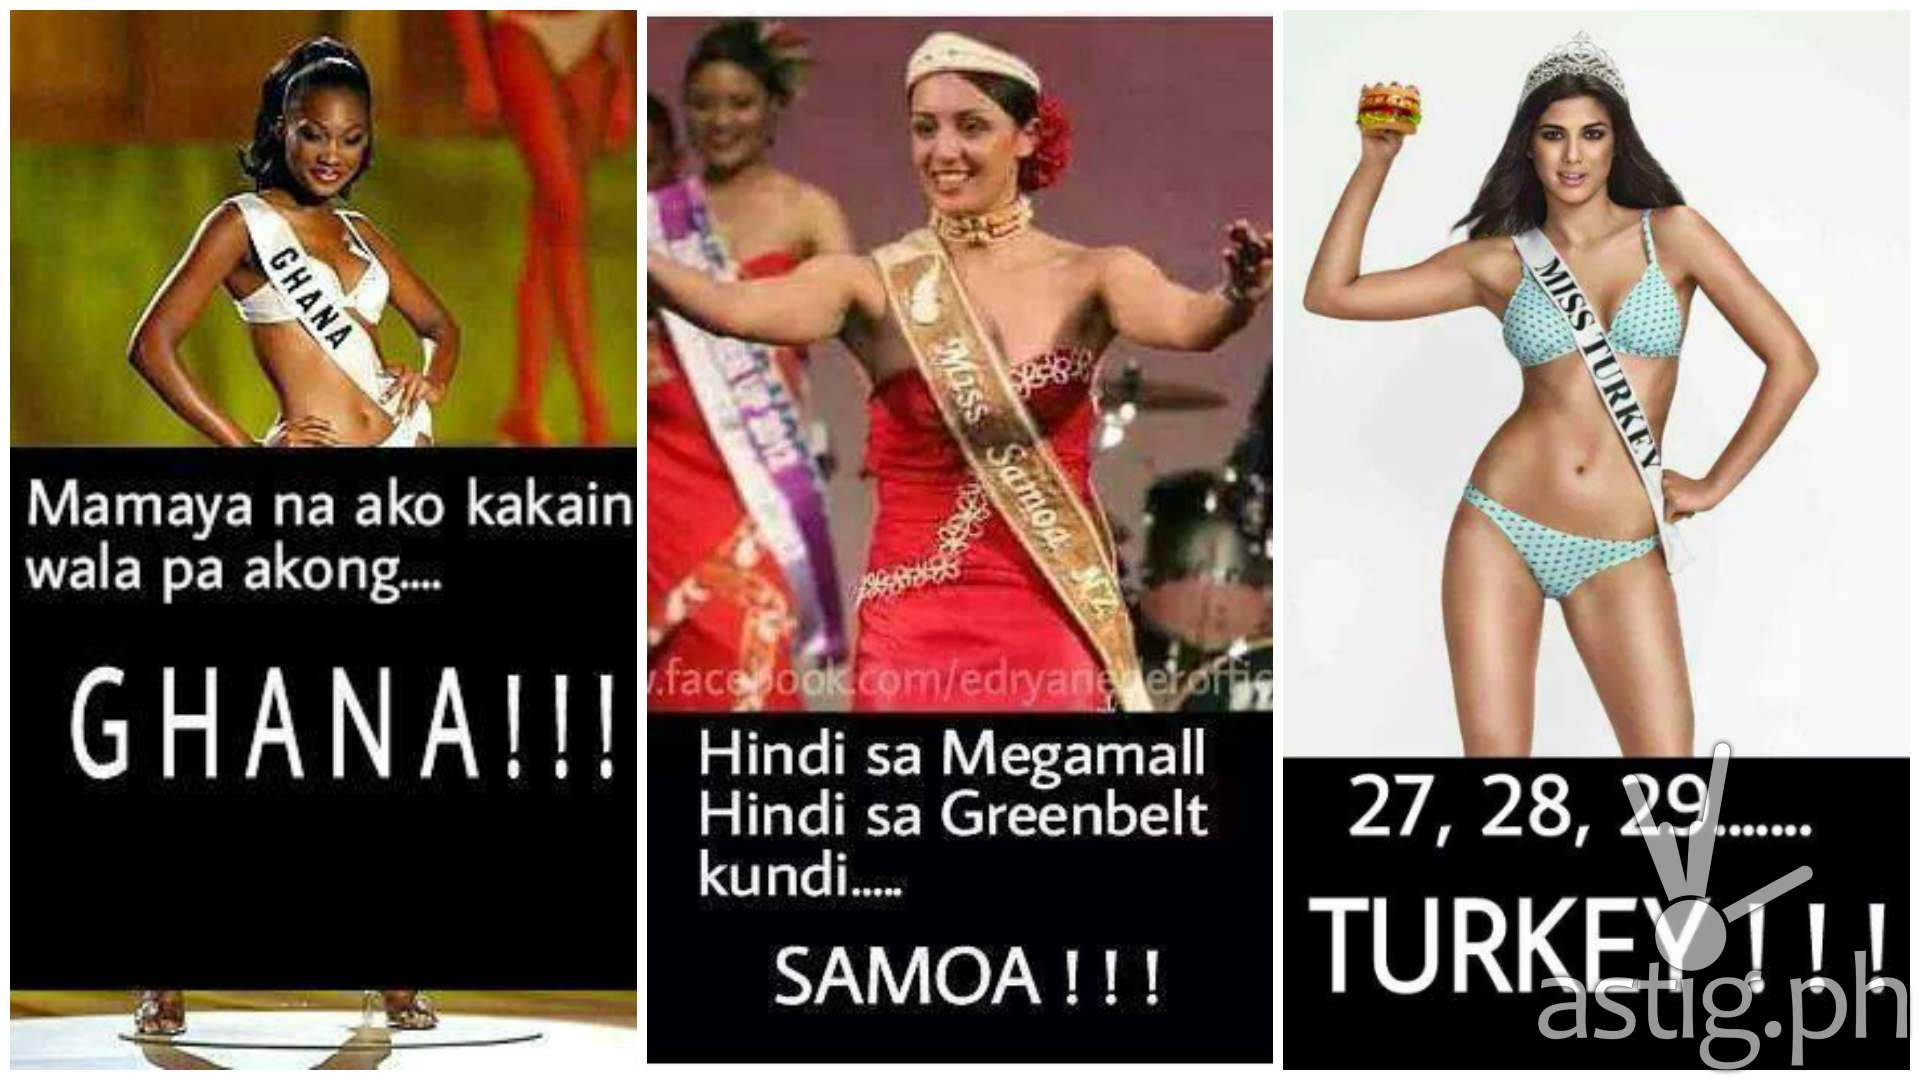 Funny Meme Miss Universe : Witty beauty pageant memes that will make you laugh astig ph